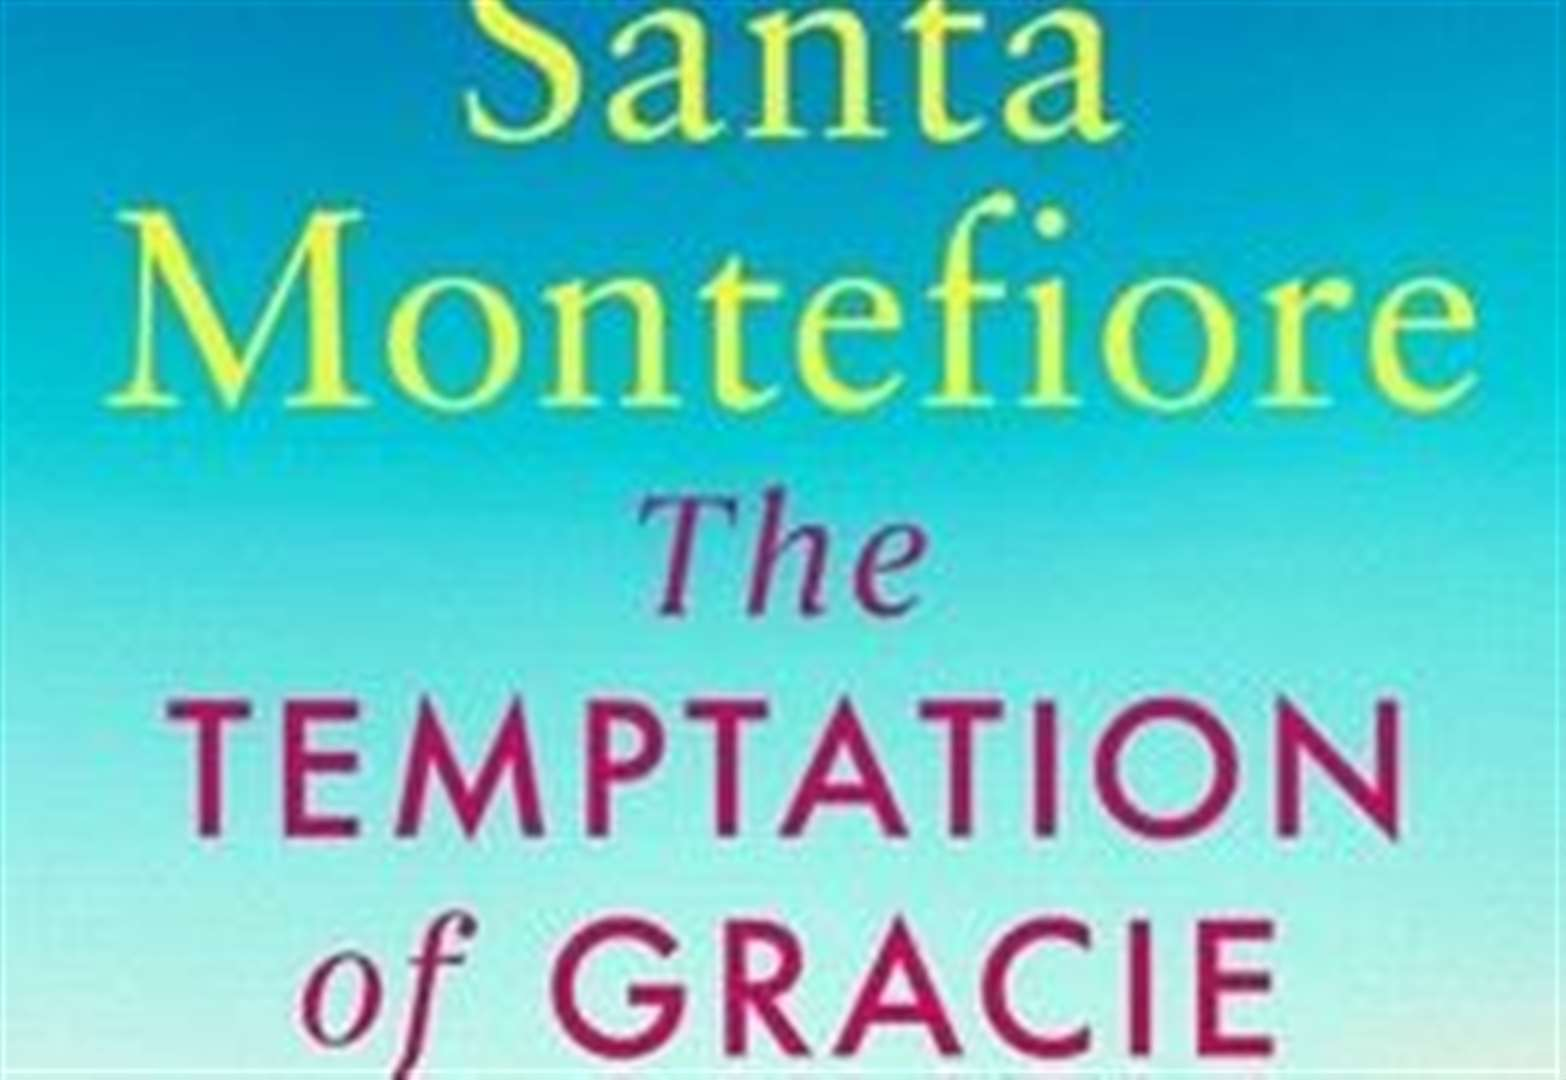 BOOK OF THE WEEK: The Temptation of Gracie by Santa Montefiore